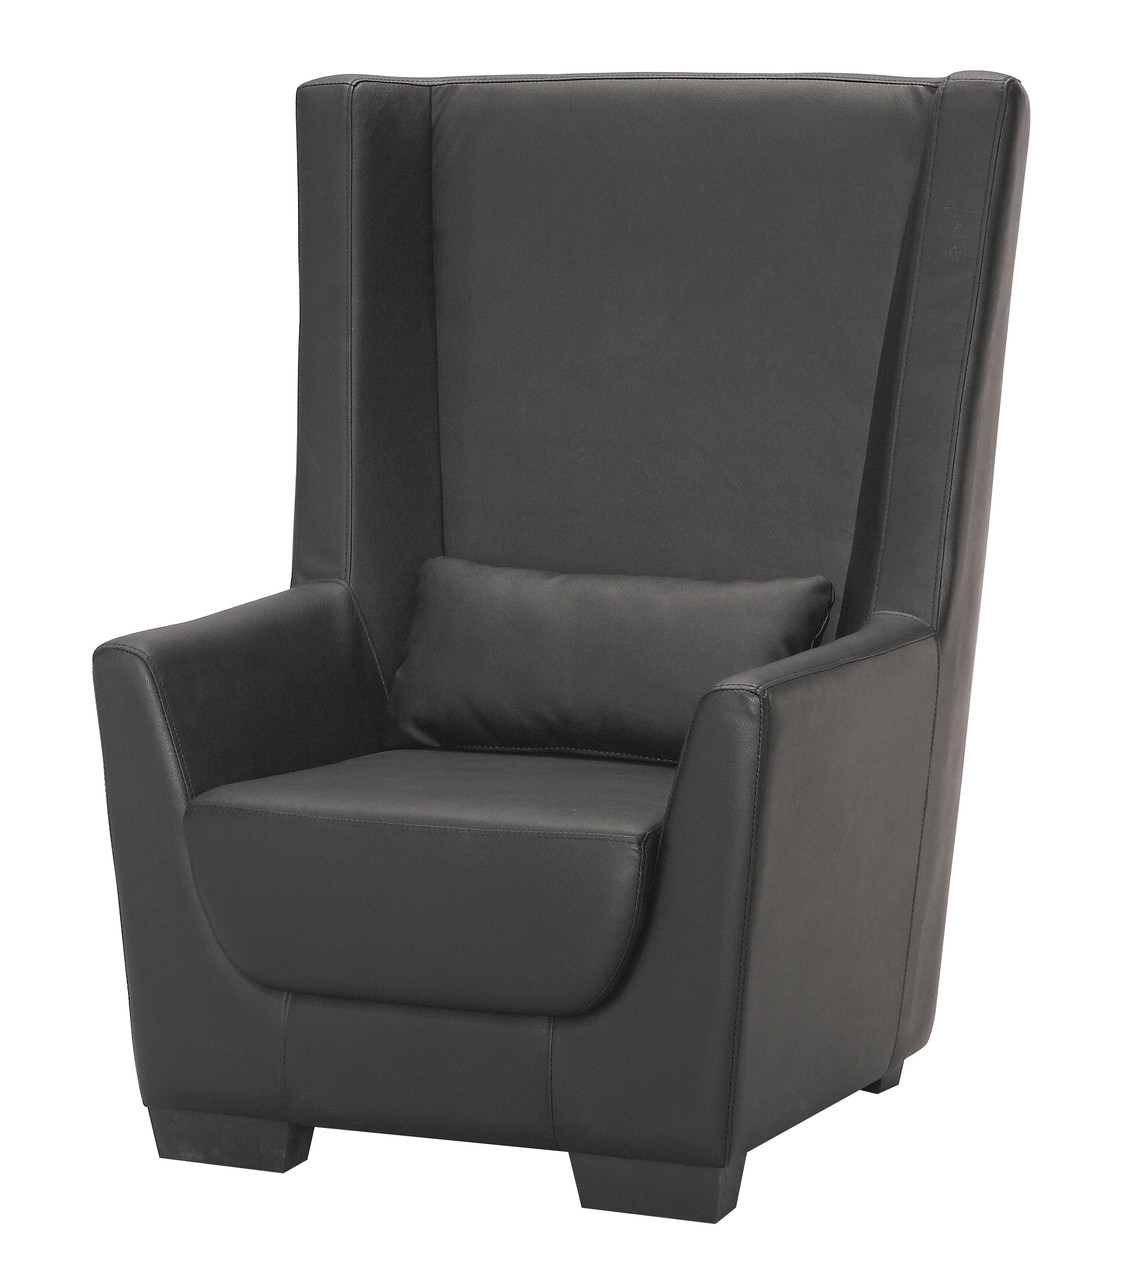 tall back chairs open accent chair quick ship ready classic modernlinefurniture